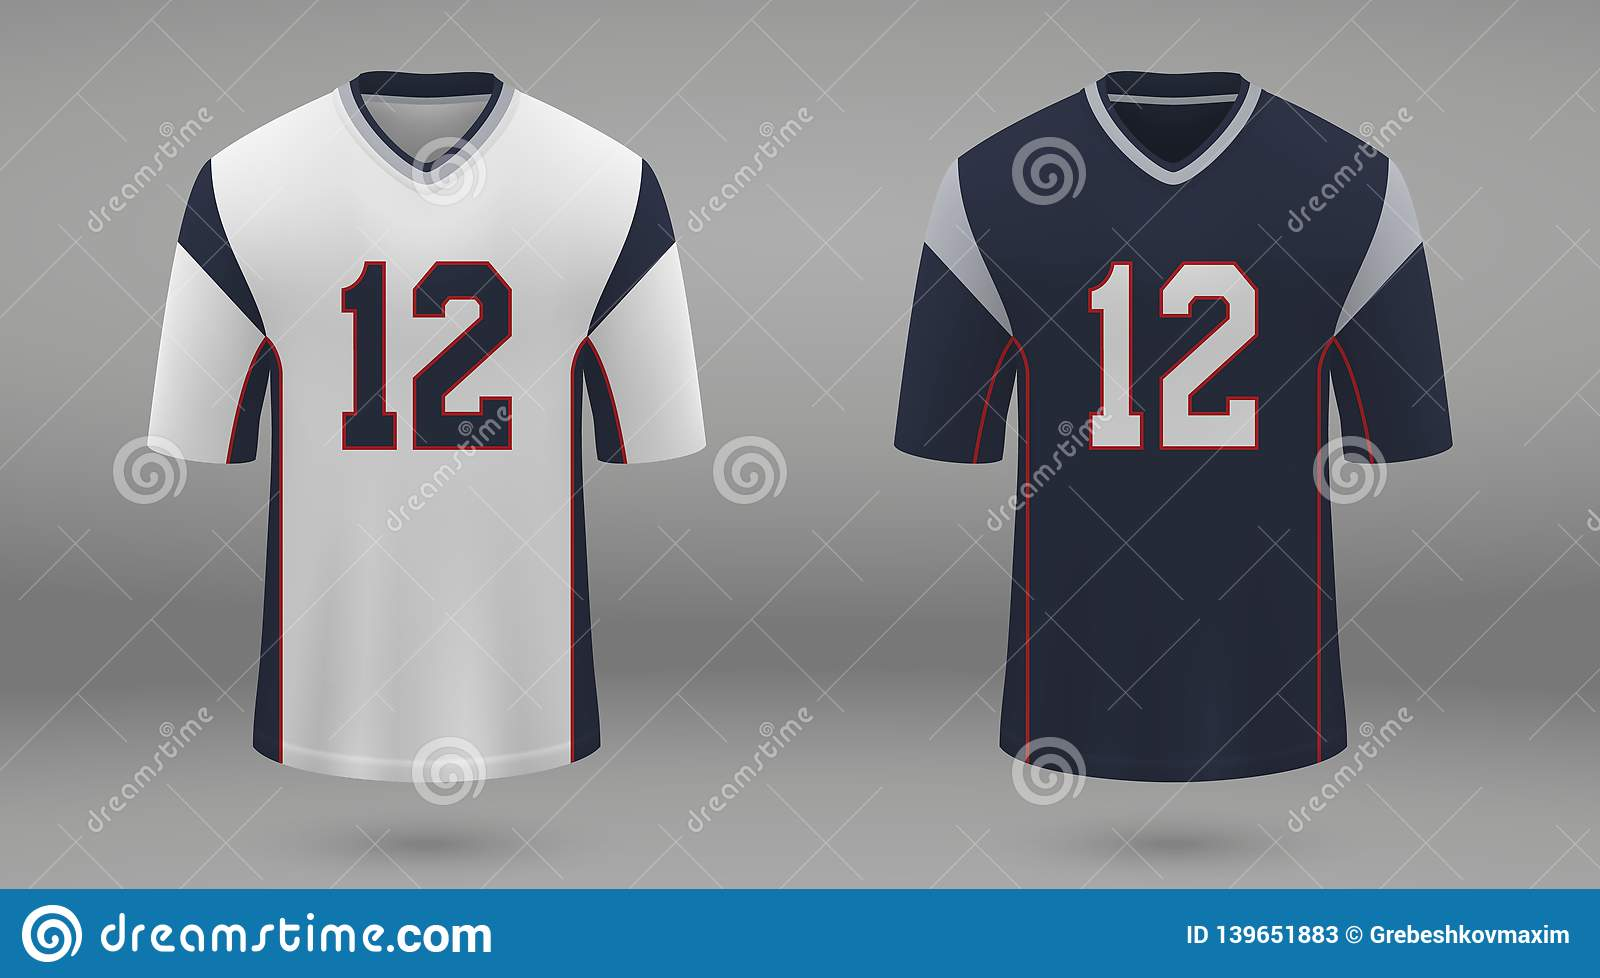 e48ae0c9ede Realistic american football jersey New England Patriots, shirt template for  kit. Vector illustration. More similar stock illustrations